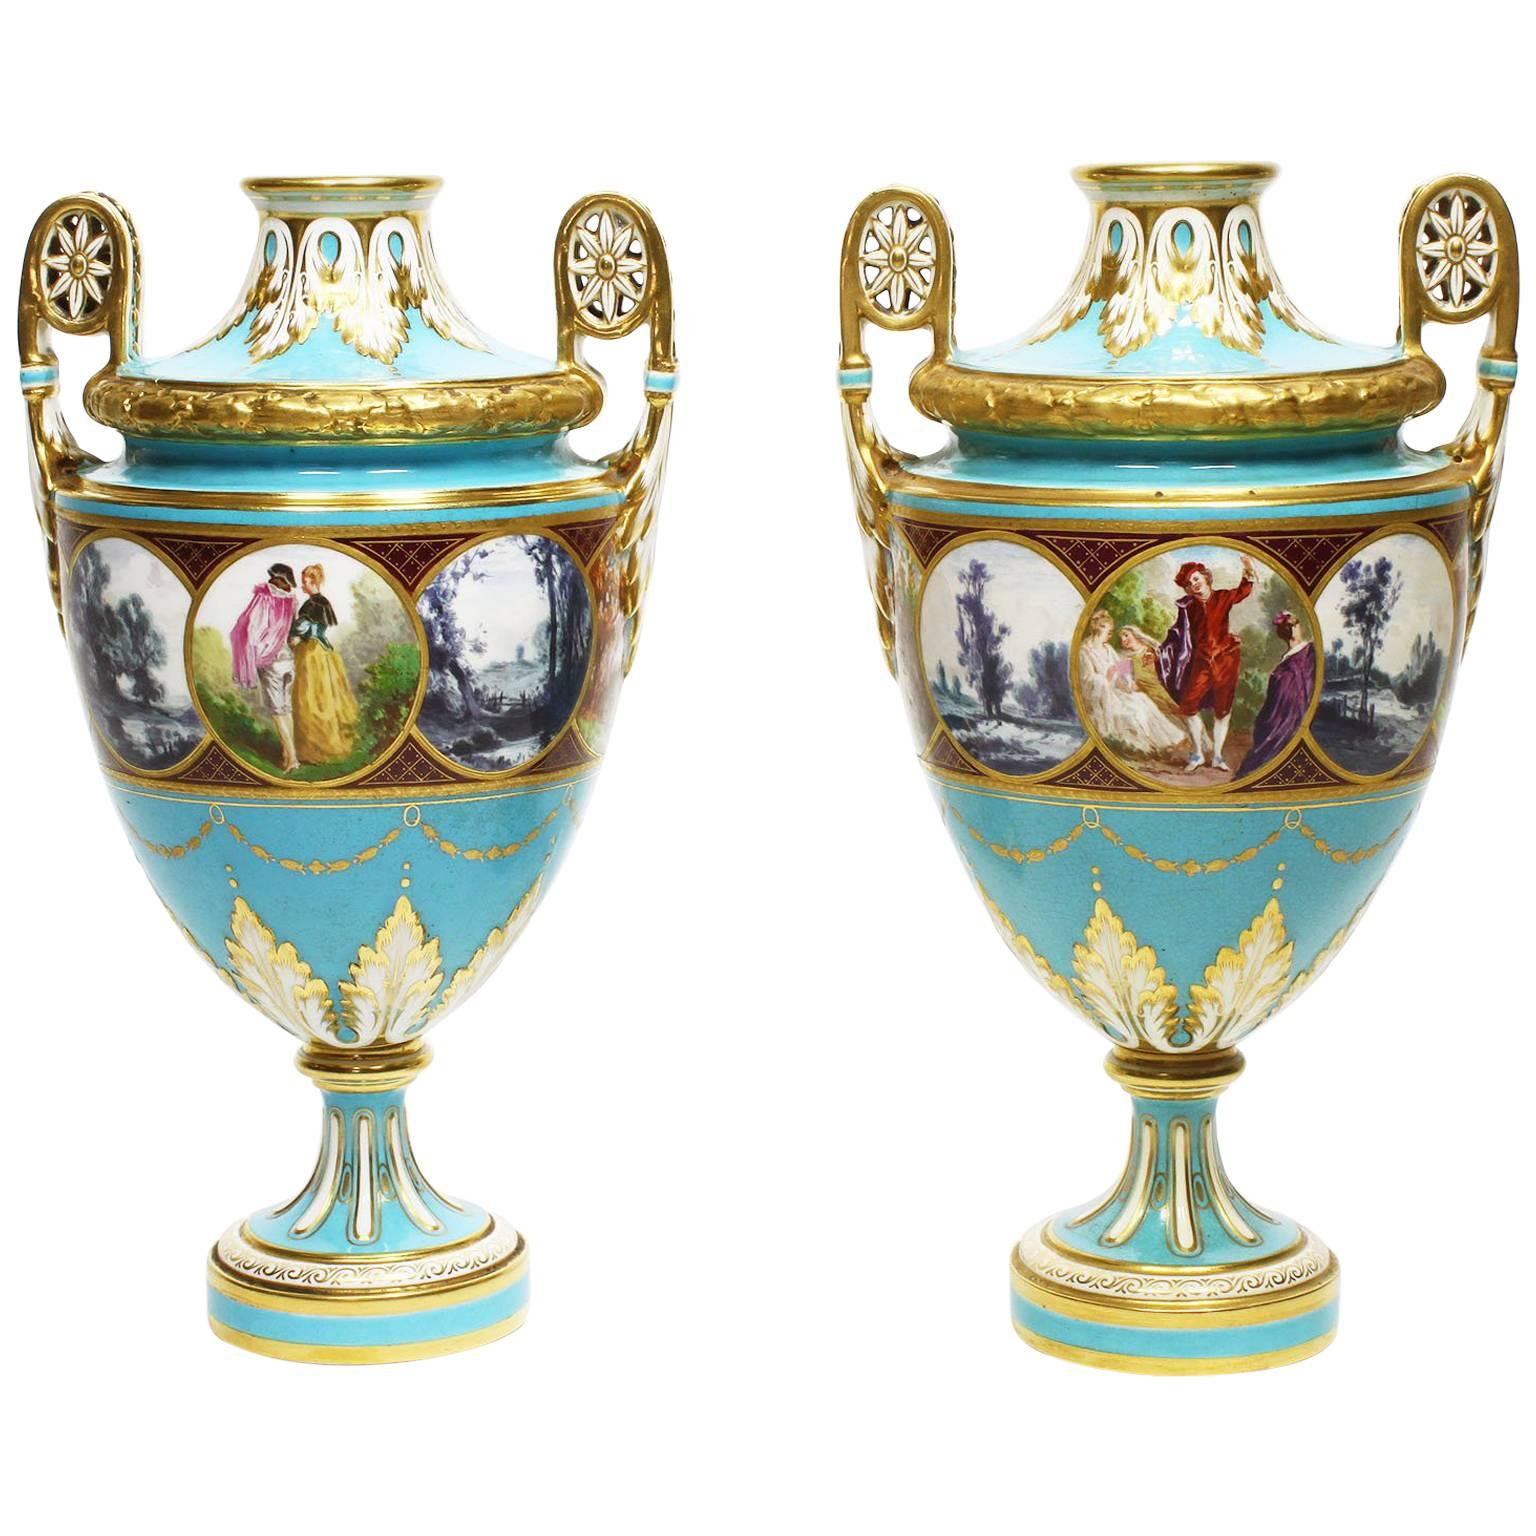 Pair of English 19th Century Turquoise Ground Painted Porcelain Vases by Minton